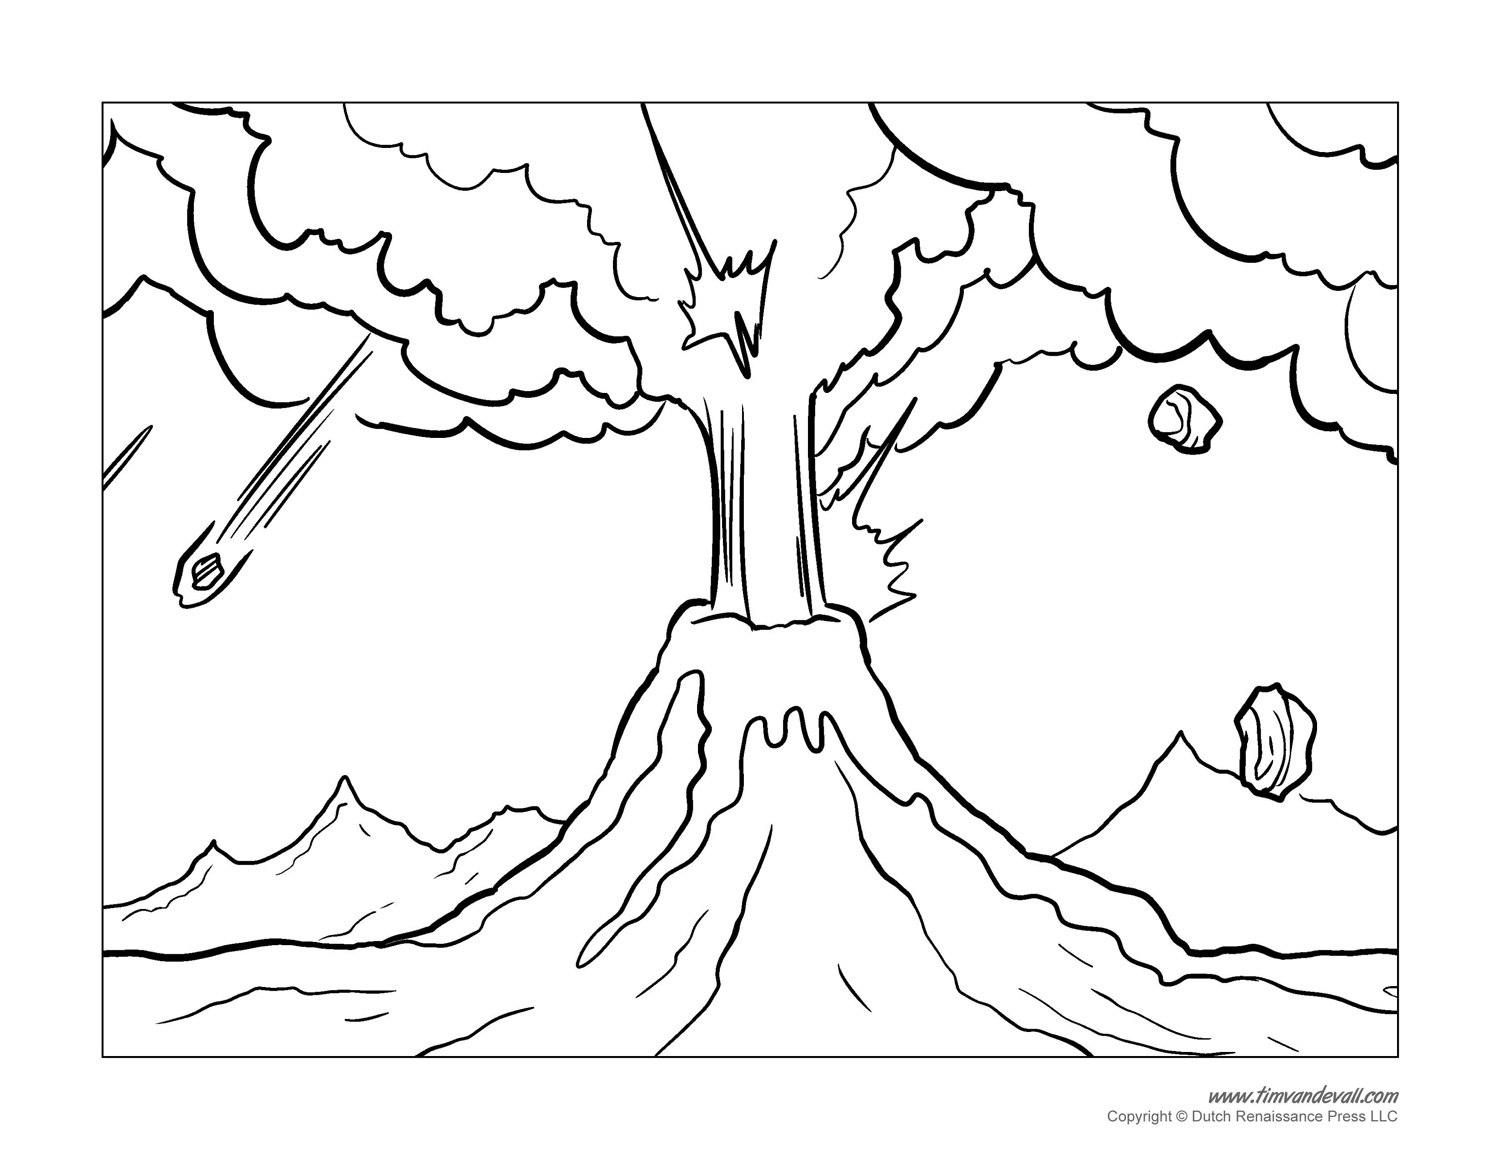 coloring sheet volcano volcano coloring pages coloring volcano sheet